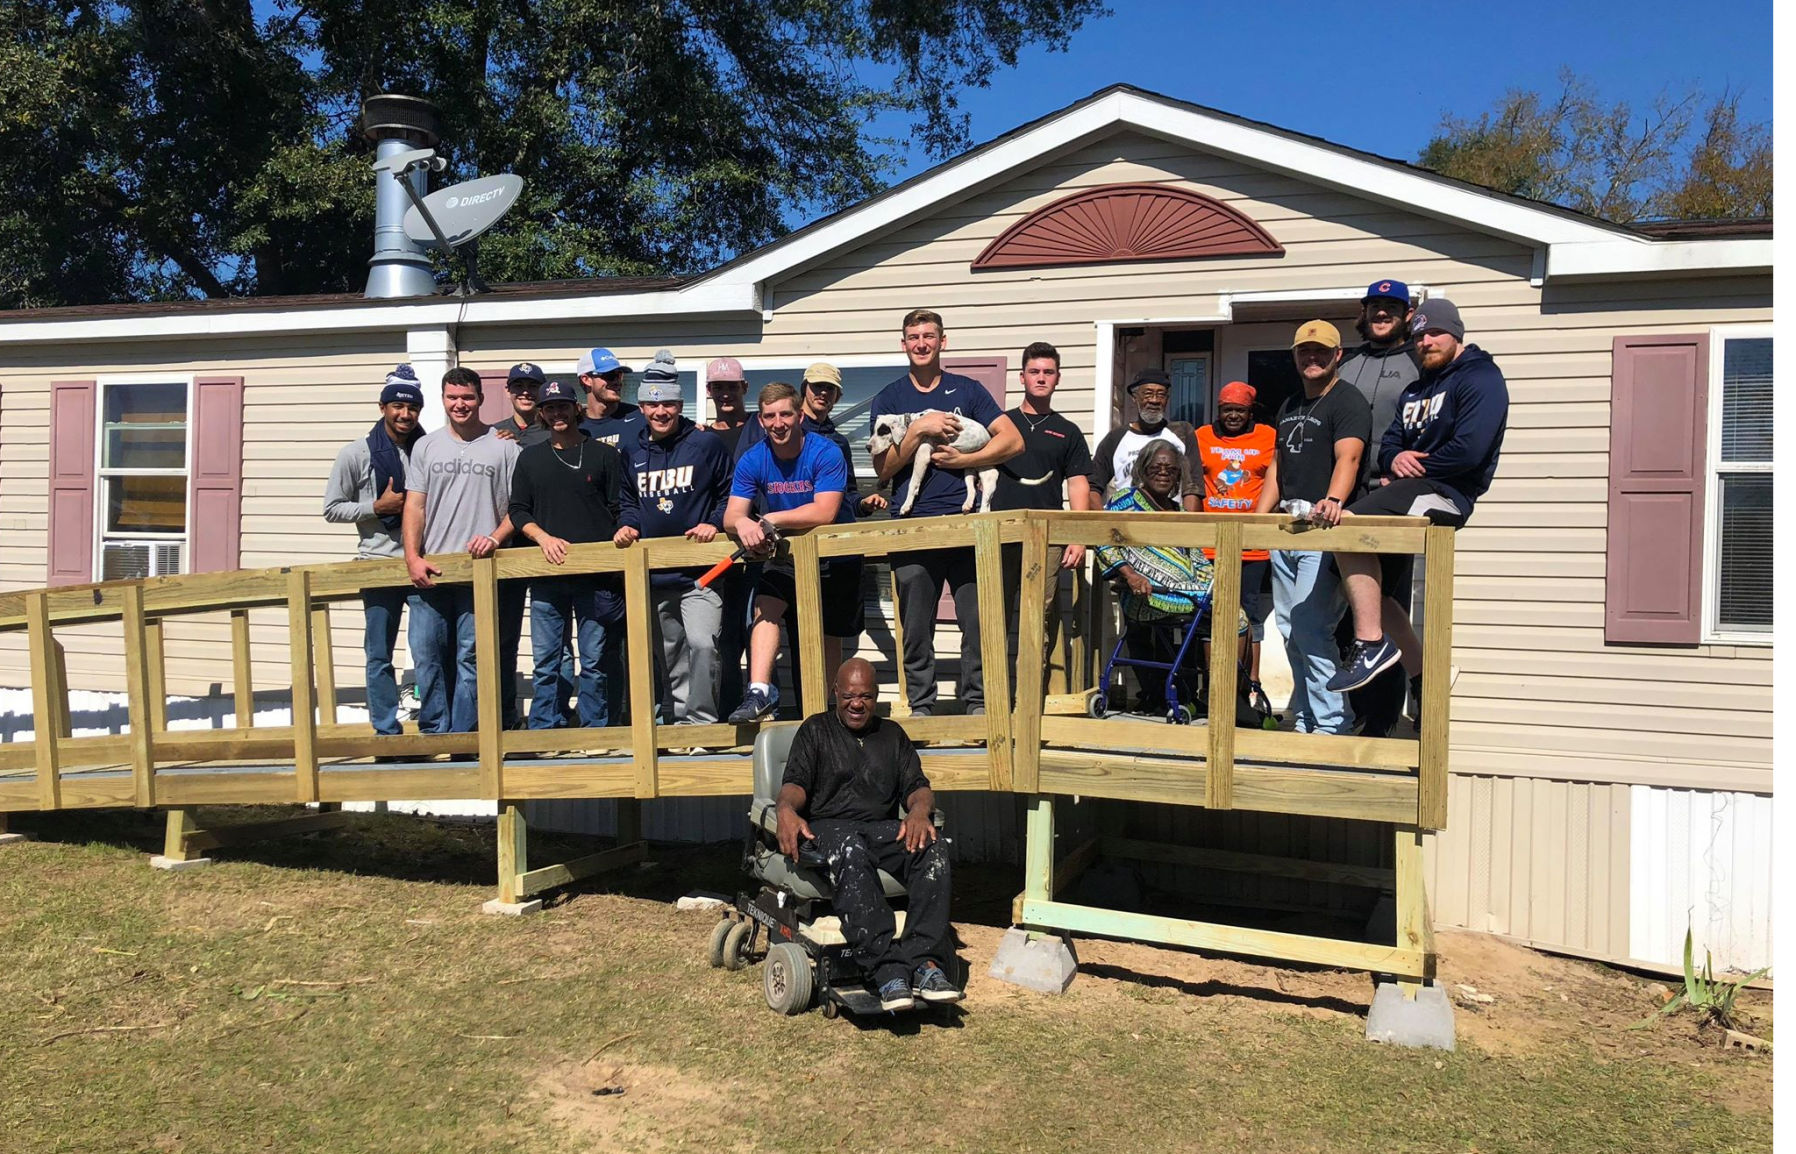 ... Wheelchair Ramp Team And East Texas Baptist Universityu0027s Baseball  Players Team Pose With A Marshall Family After Building A Free Ramp At  Their Home Last ...